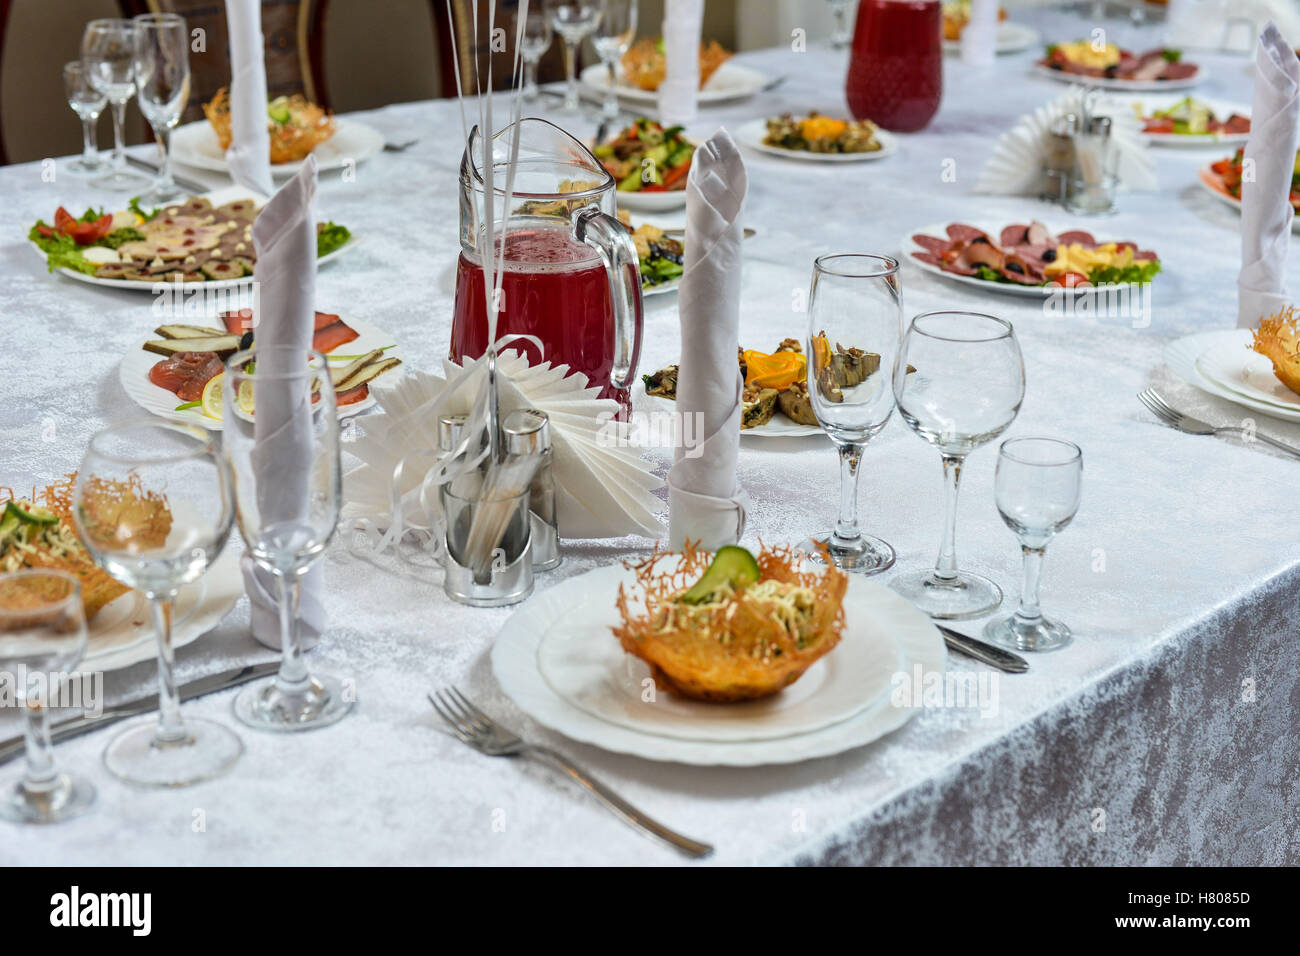 Table setting in restaurant with Greek salad and wine & Table setting in restaurant with Greek salad and wine Stock Photo ...